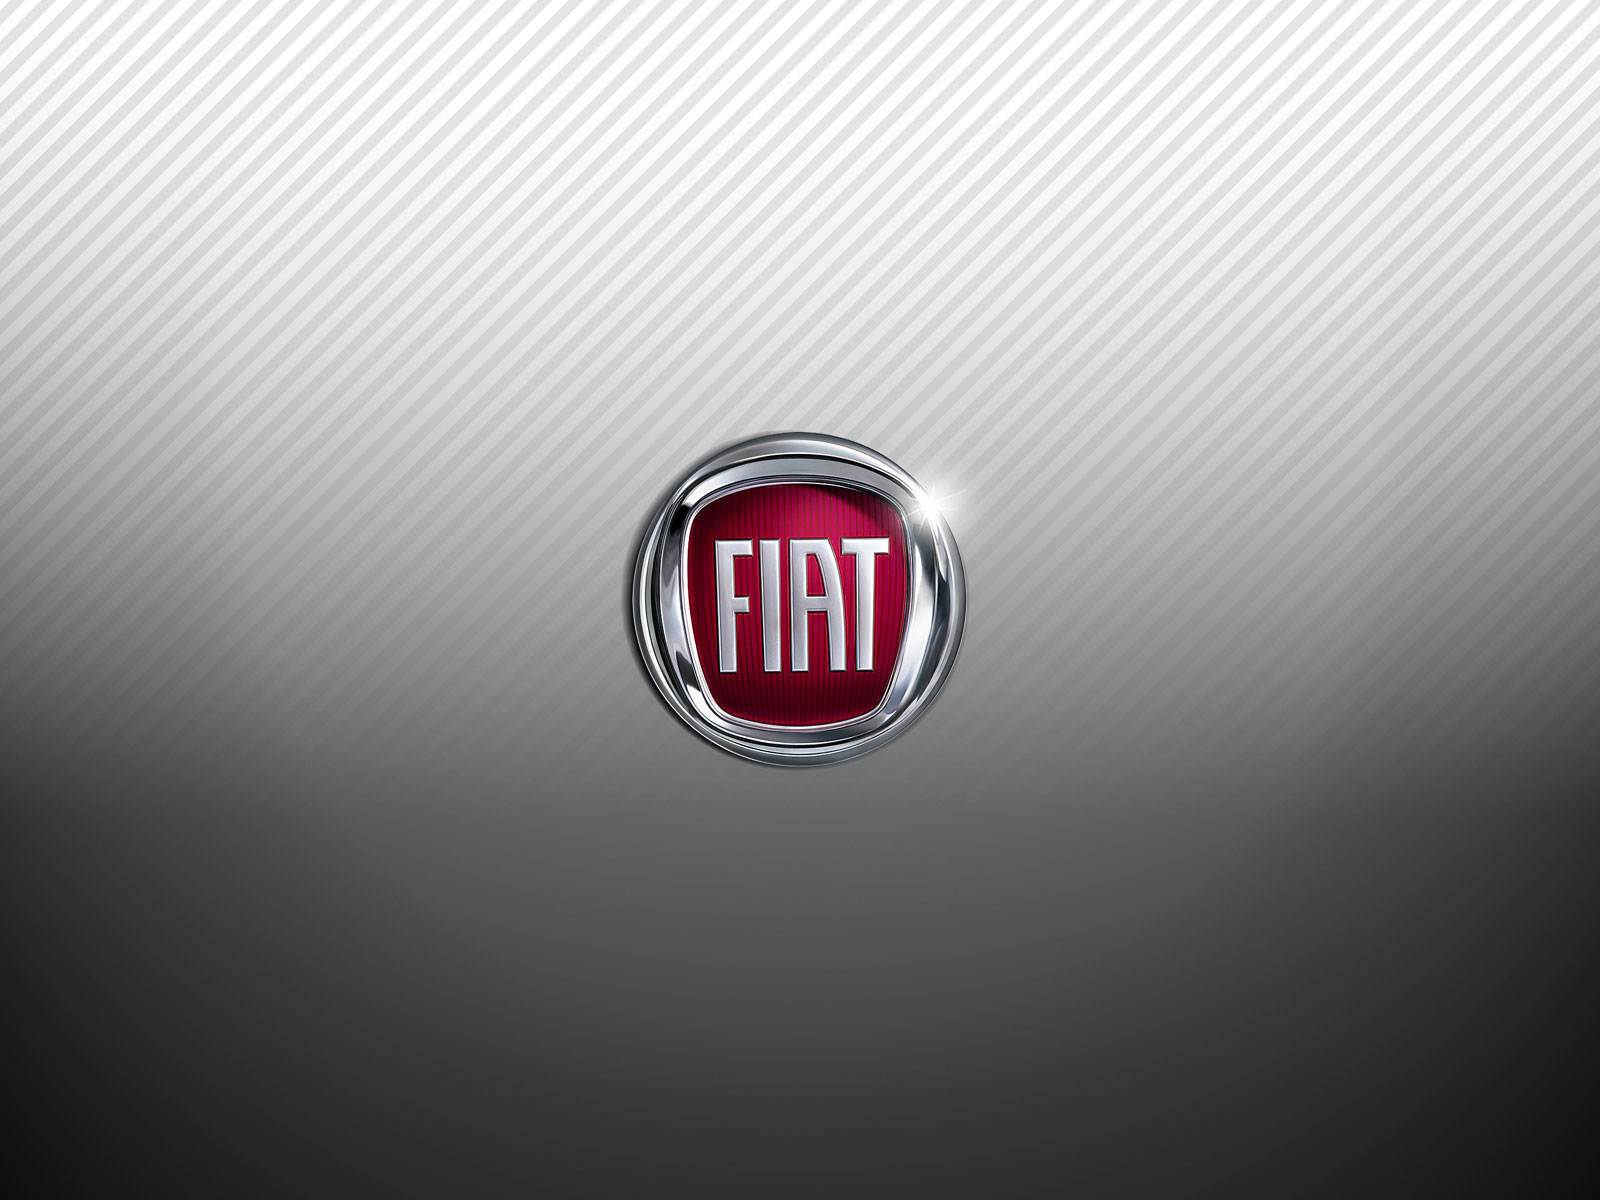 1932 Swot Analysis Of Hyundai Motors besides Star Wars Dual Monitor Wallpaper as well Gucci Wallpapers together with The Sexy Girls Of Sema 2012 Tflcar Exclusive moreover Kingdom Hearts Wallpapers. on fiat 500 background